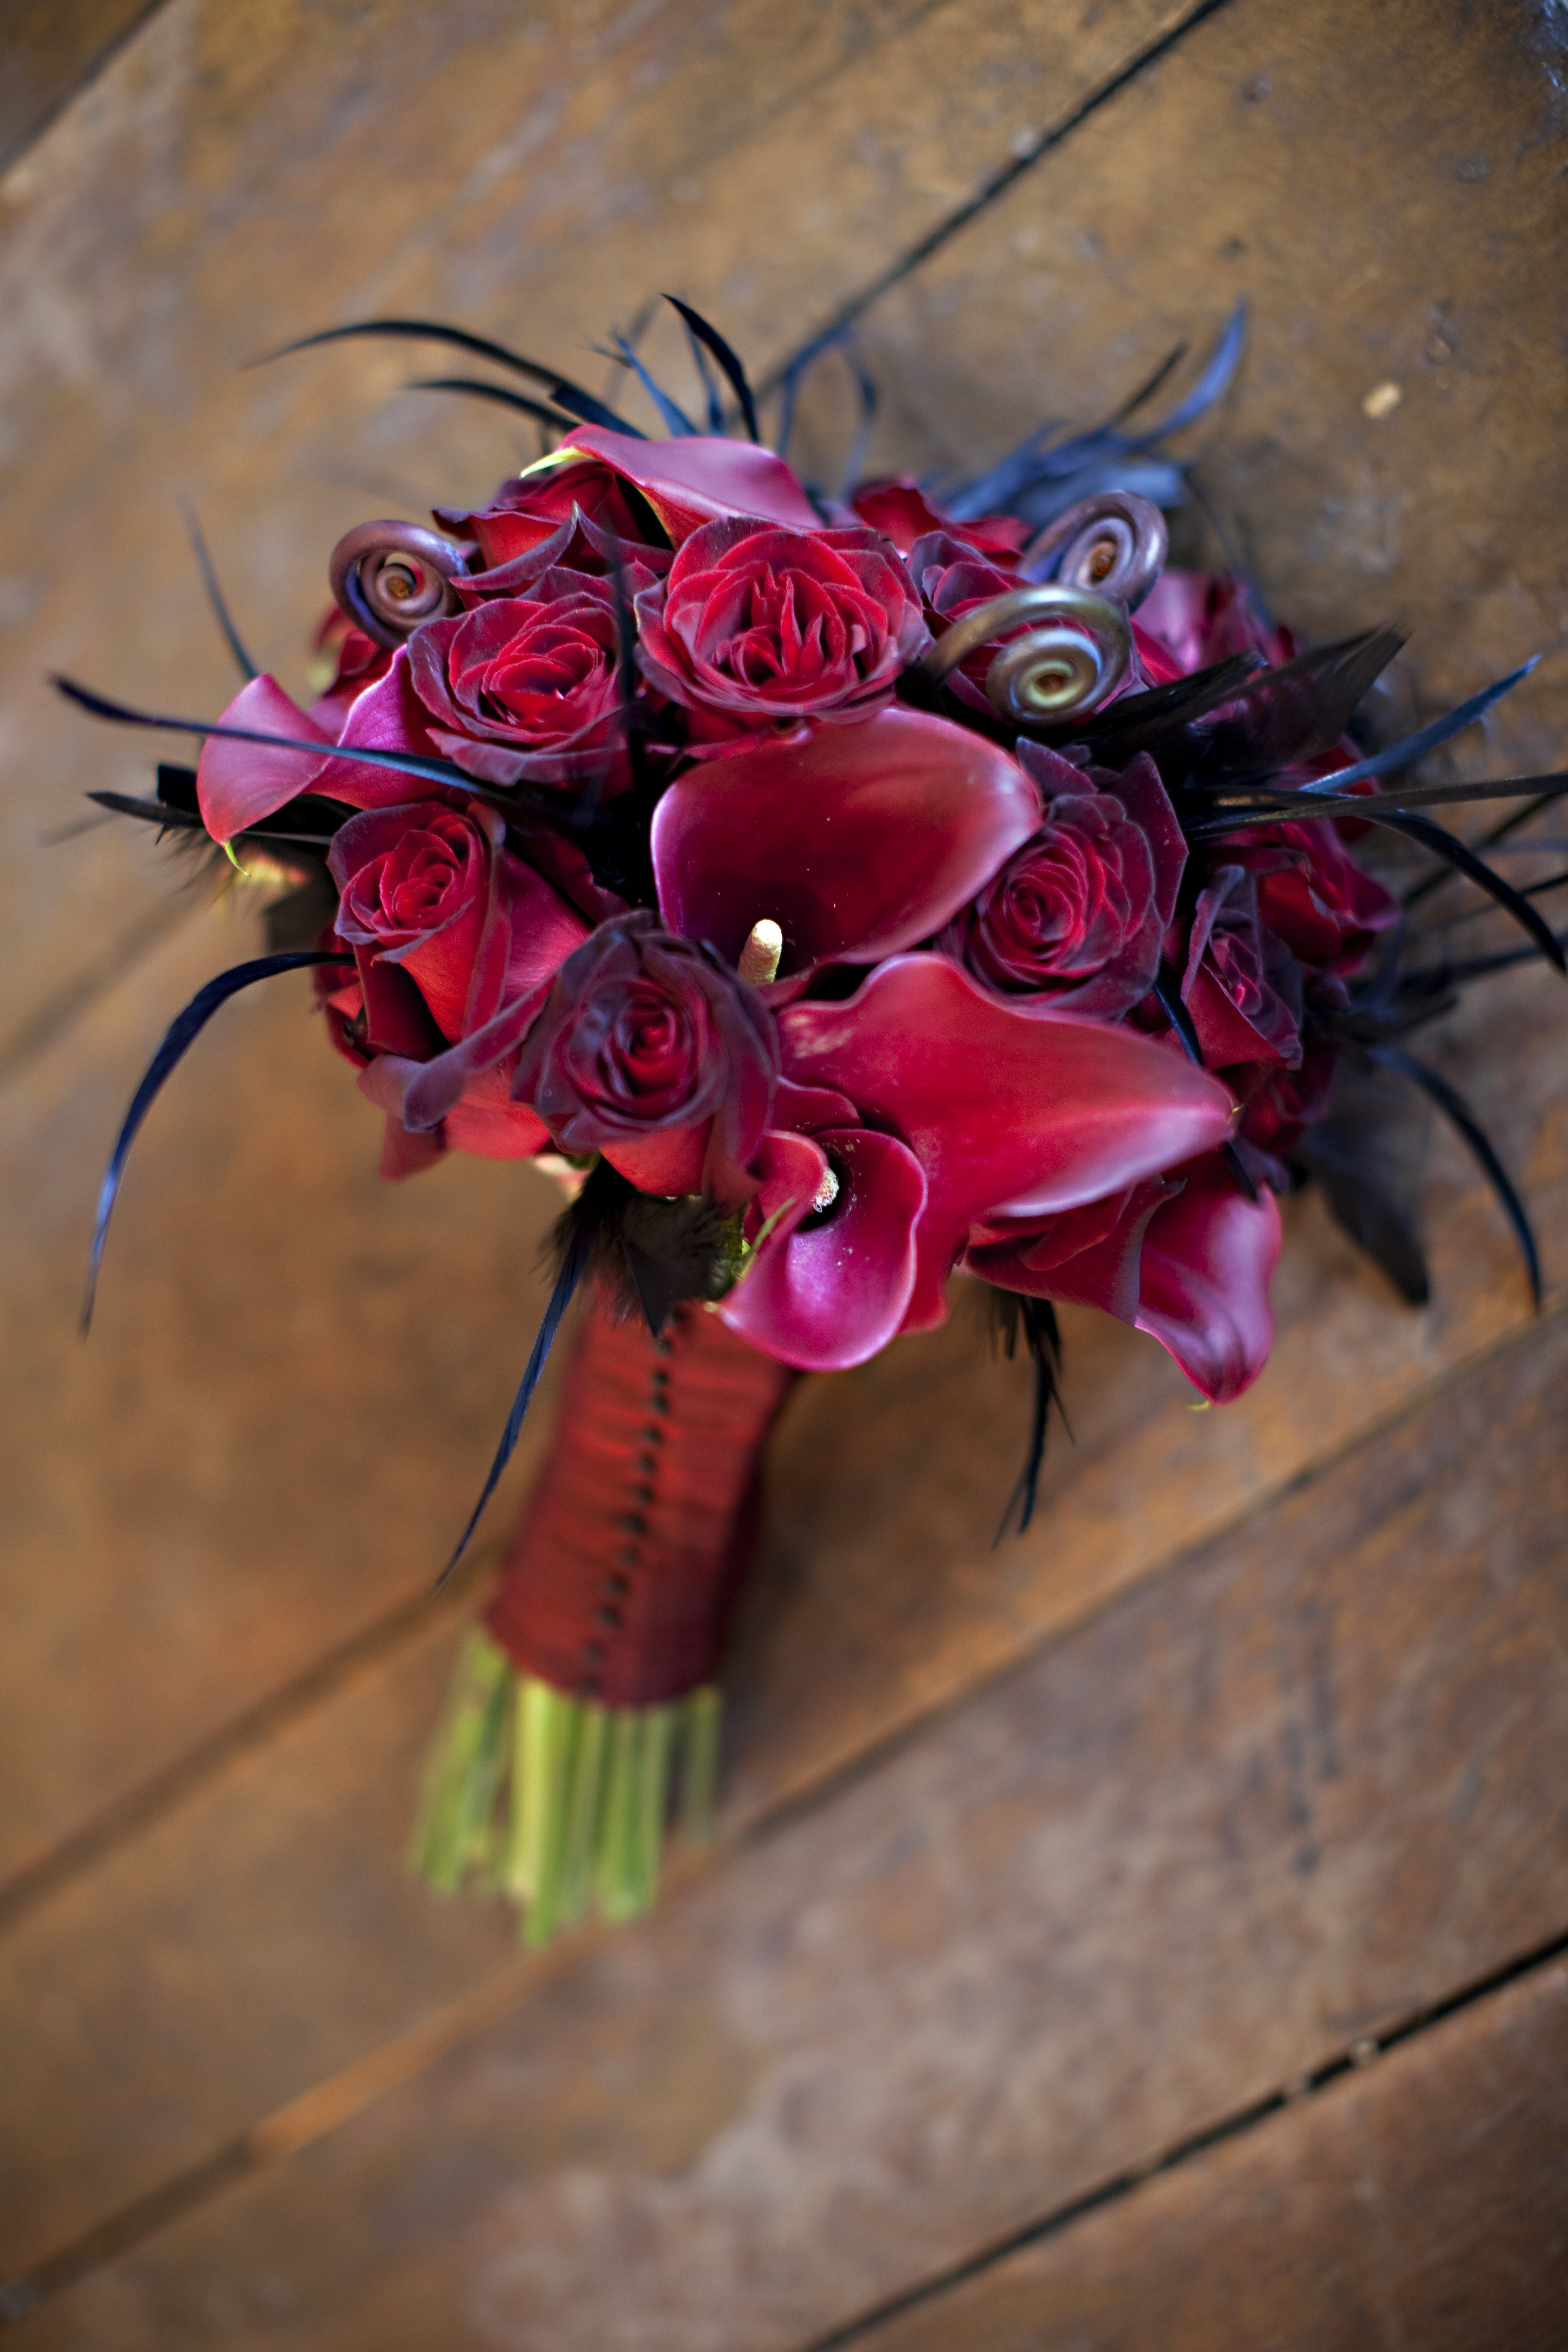 Beauty, Flowers & Decor, red, Feathers, Bride Bouquets, Flowers, Roses, Bouquet, Calla, Bridal, Hand, Lily, Fern, Just bloomed florals, Held, Fiddleheads, Shoots